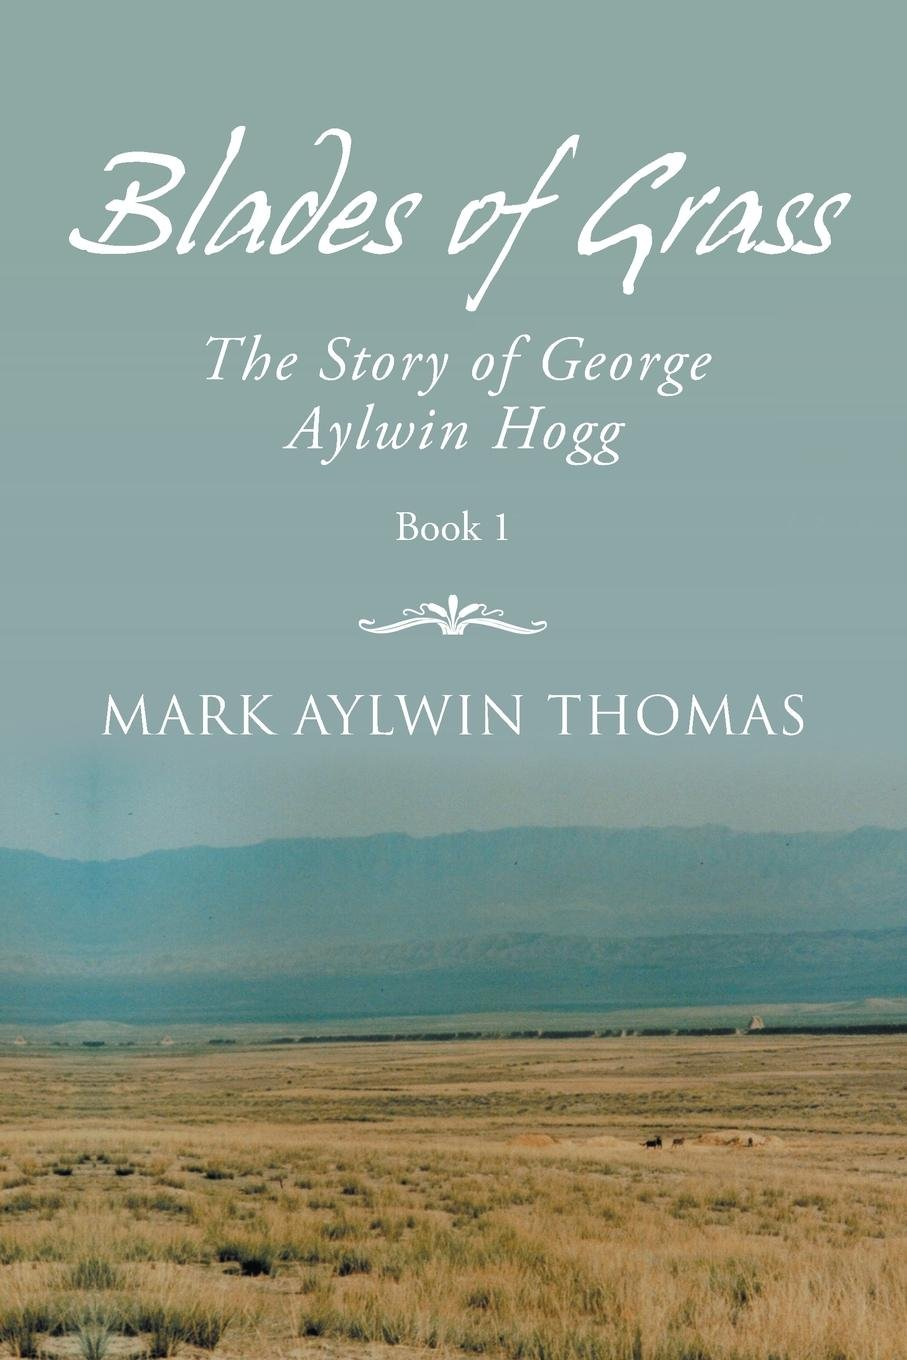 Blades of Grass: The Story of George Aylwin Hogg PDF